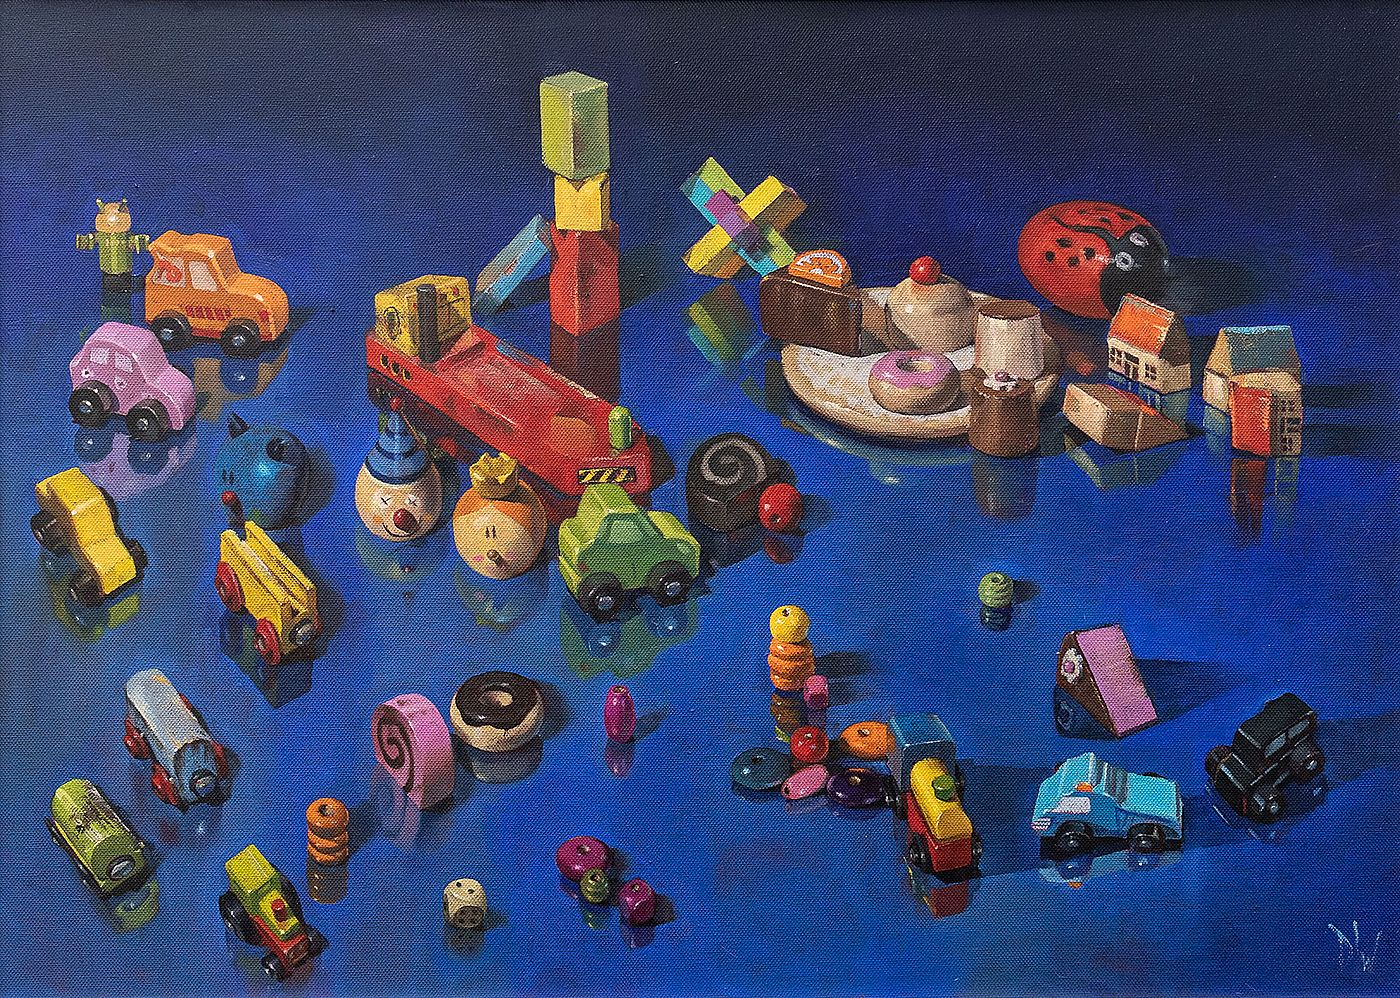 Wooden toys by Dave West